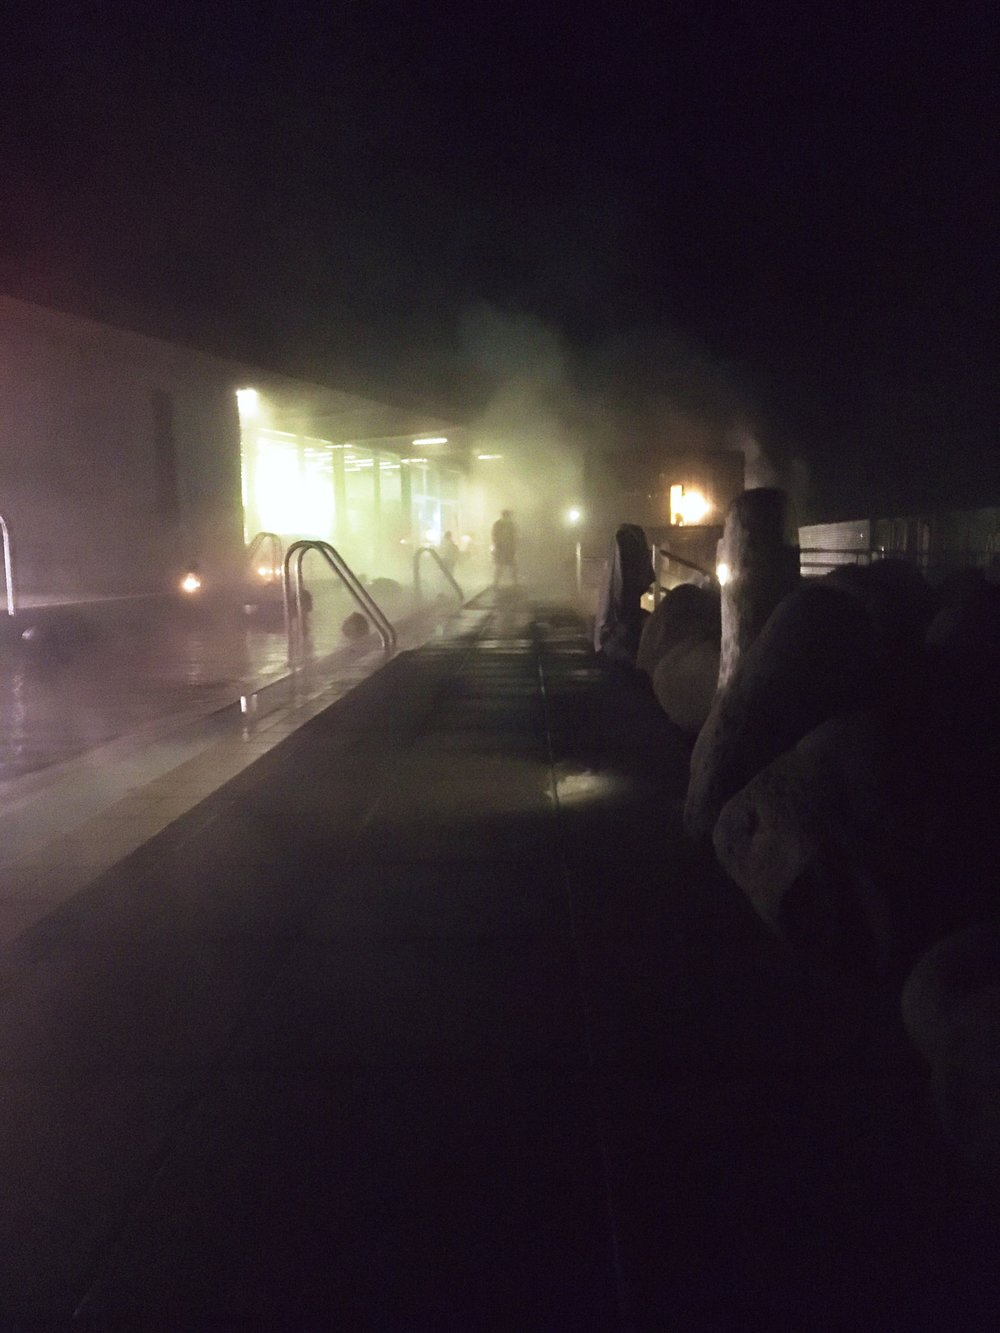 The hot spring at Fontana in Iceland at night.